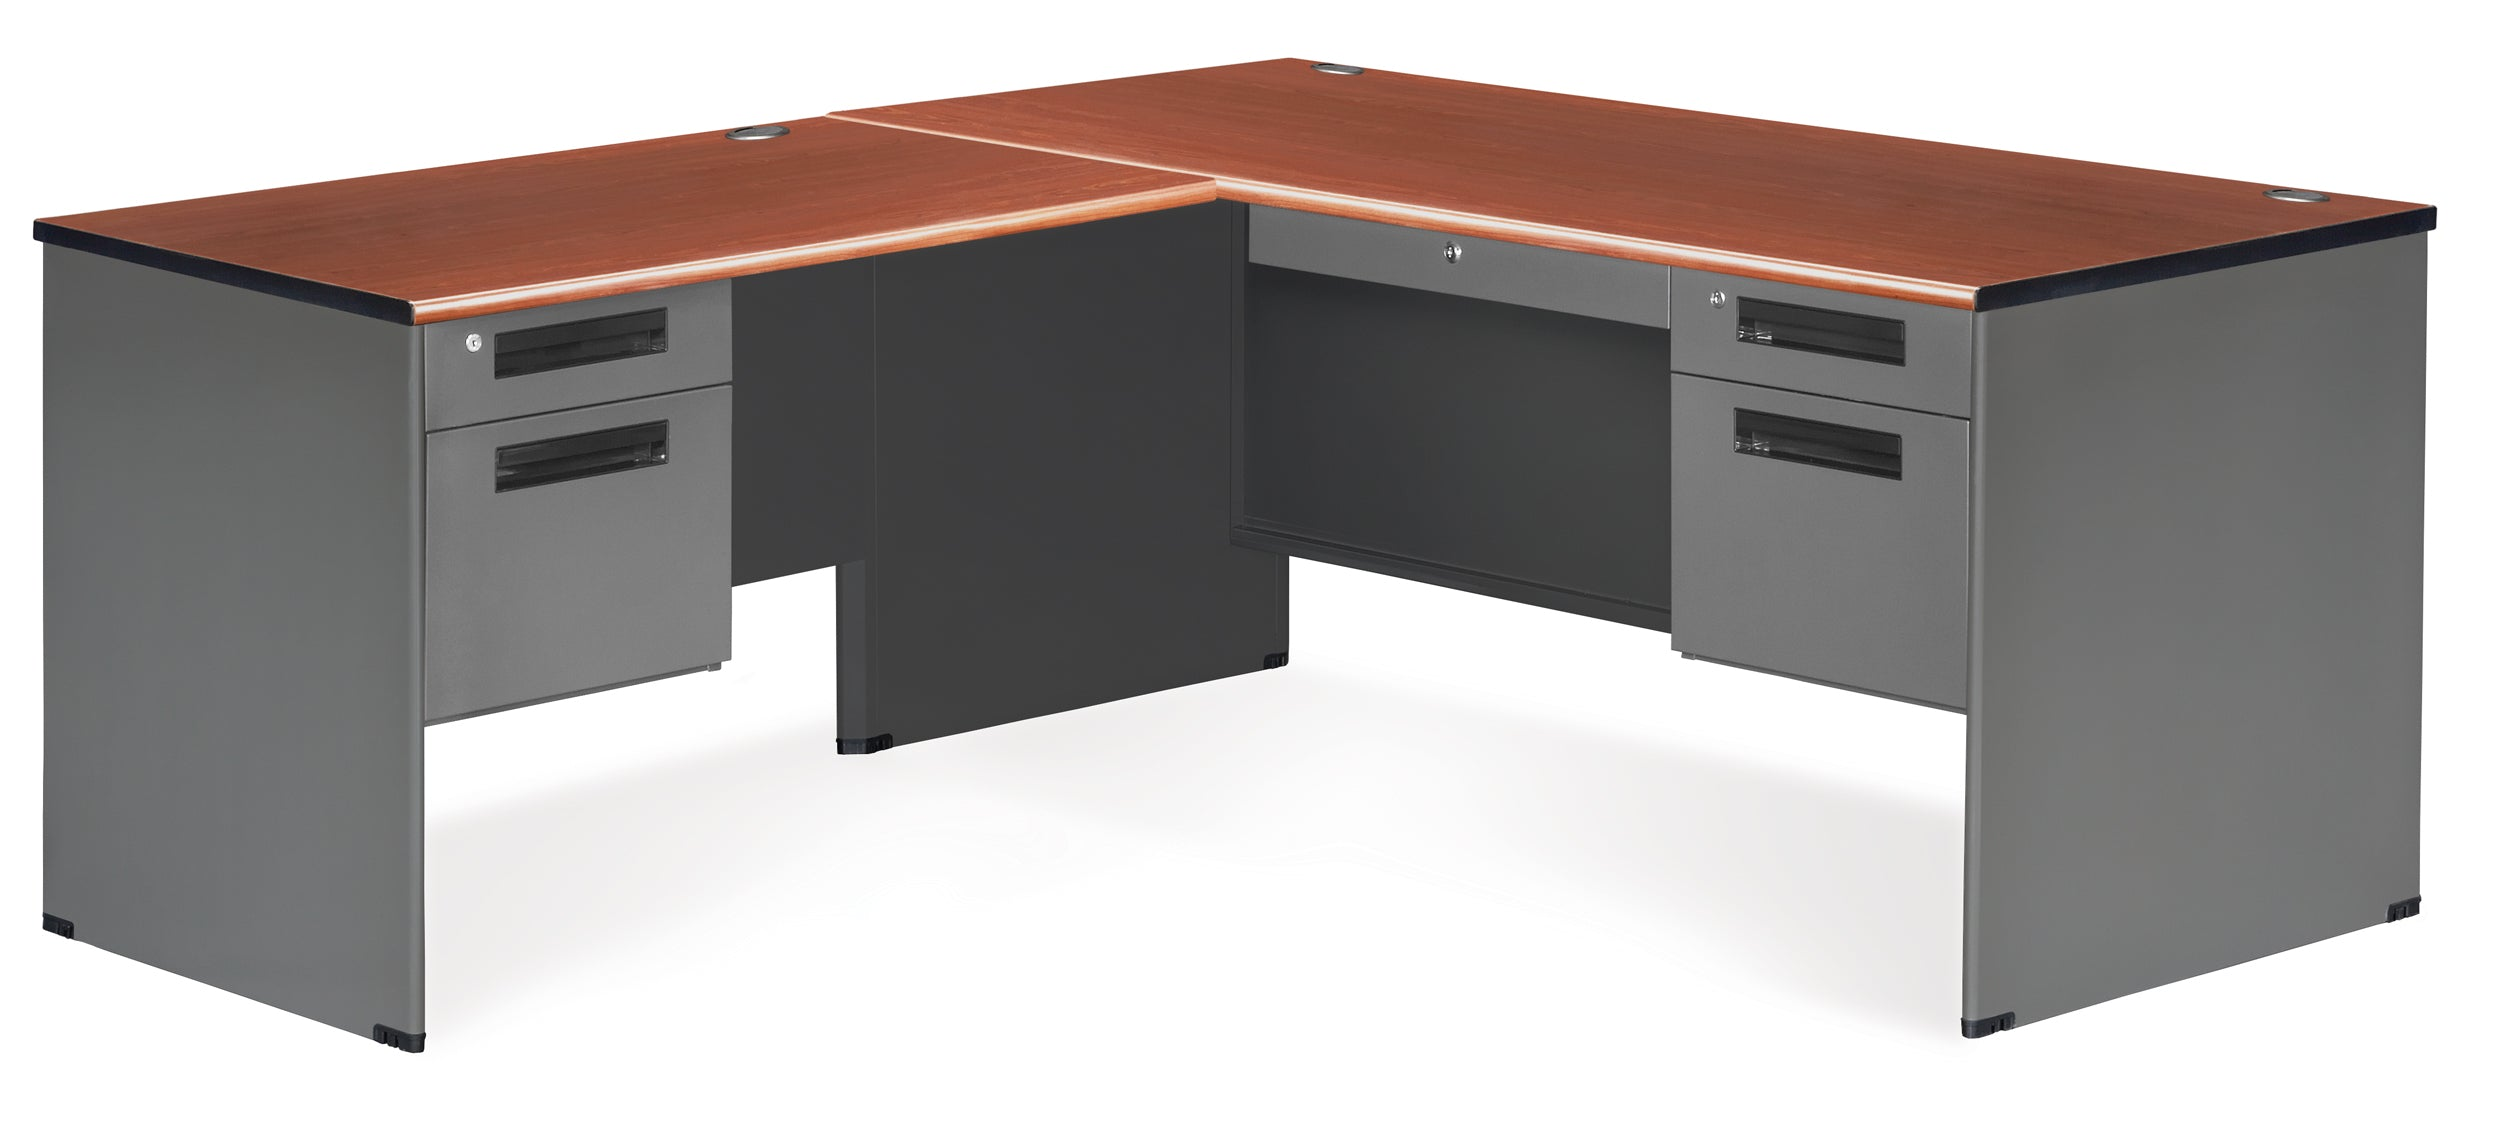 77366L Executive Series L-Shaped 5-Drawer Desk, Left Pedestal Return